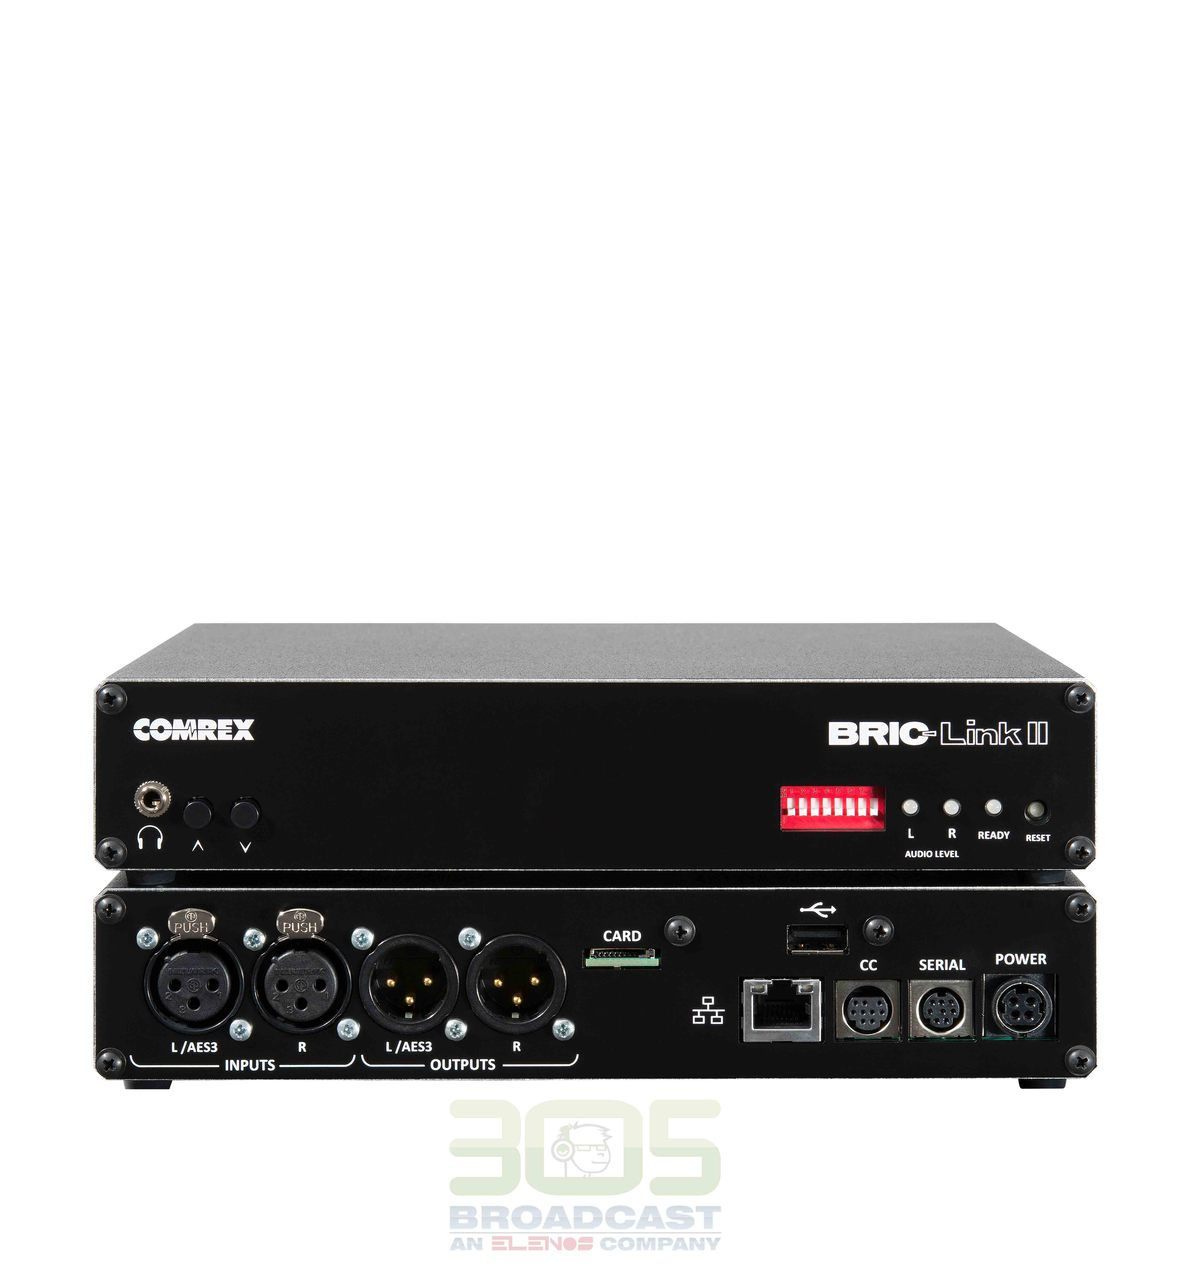 Image of Comrex BRIC Link II IP Audio Codec